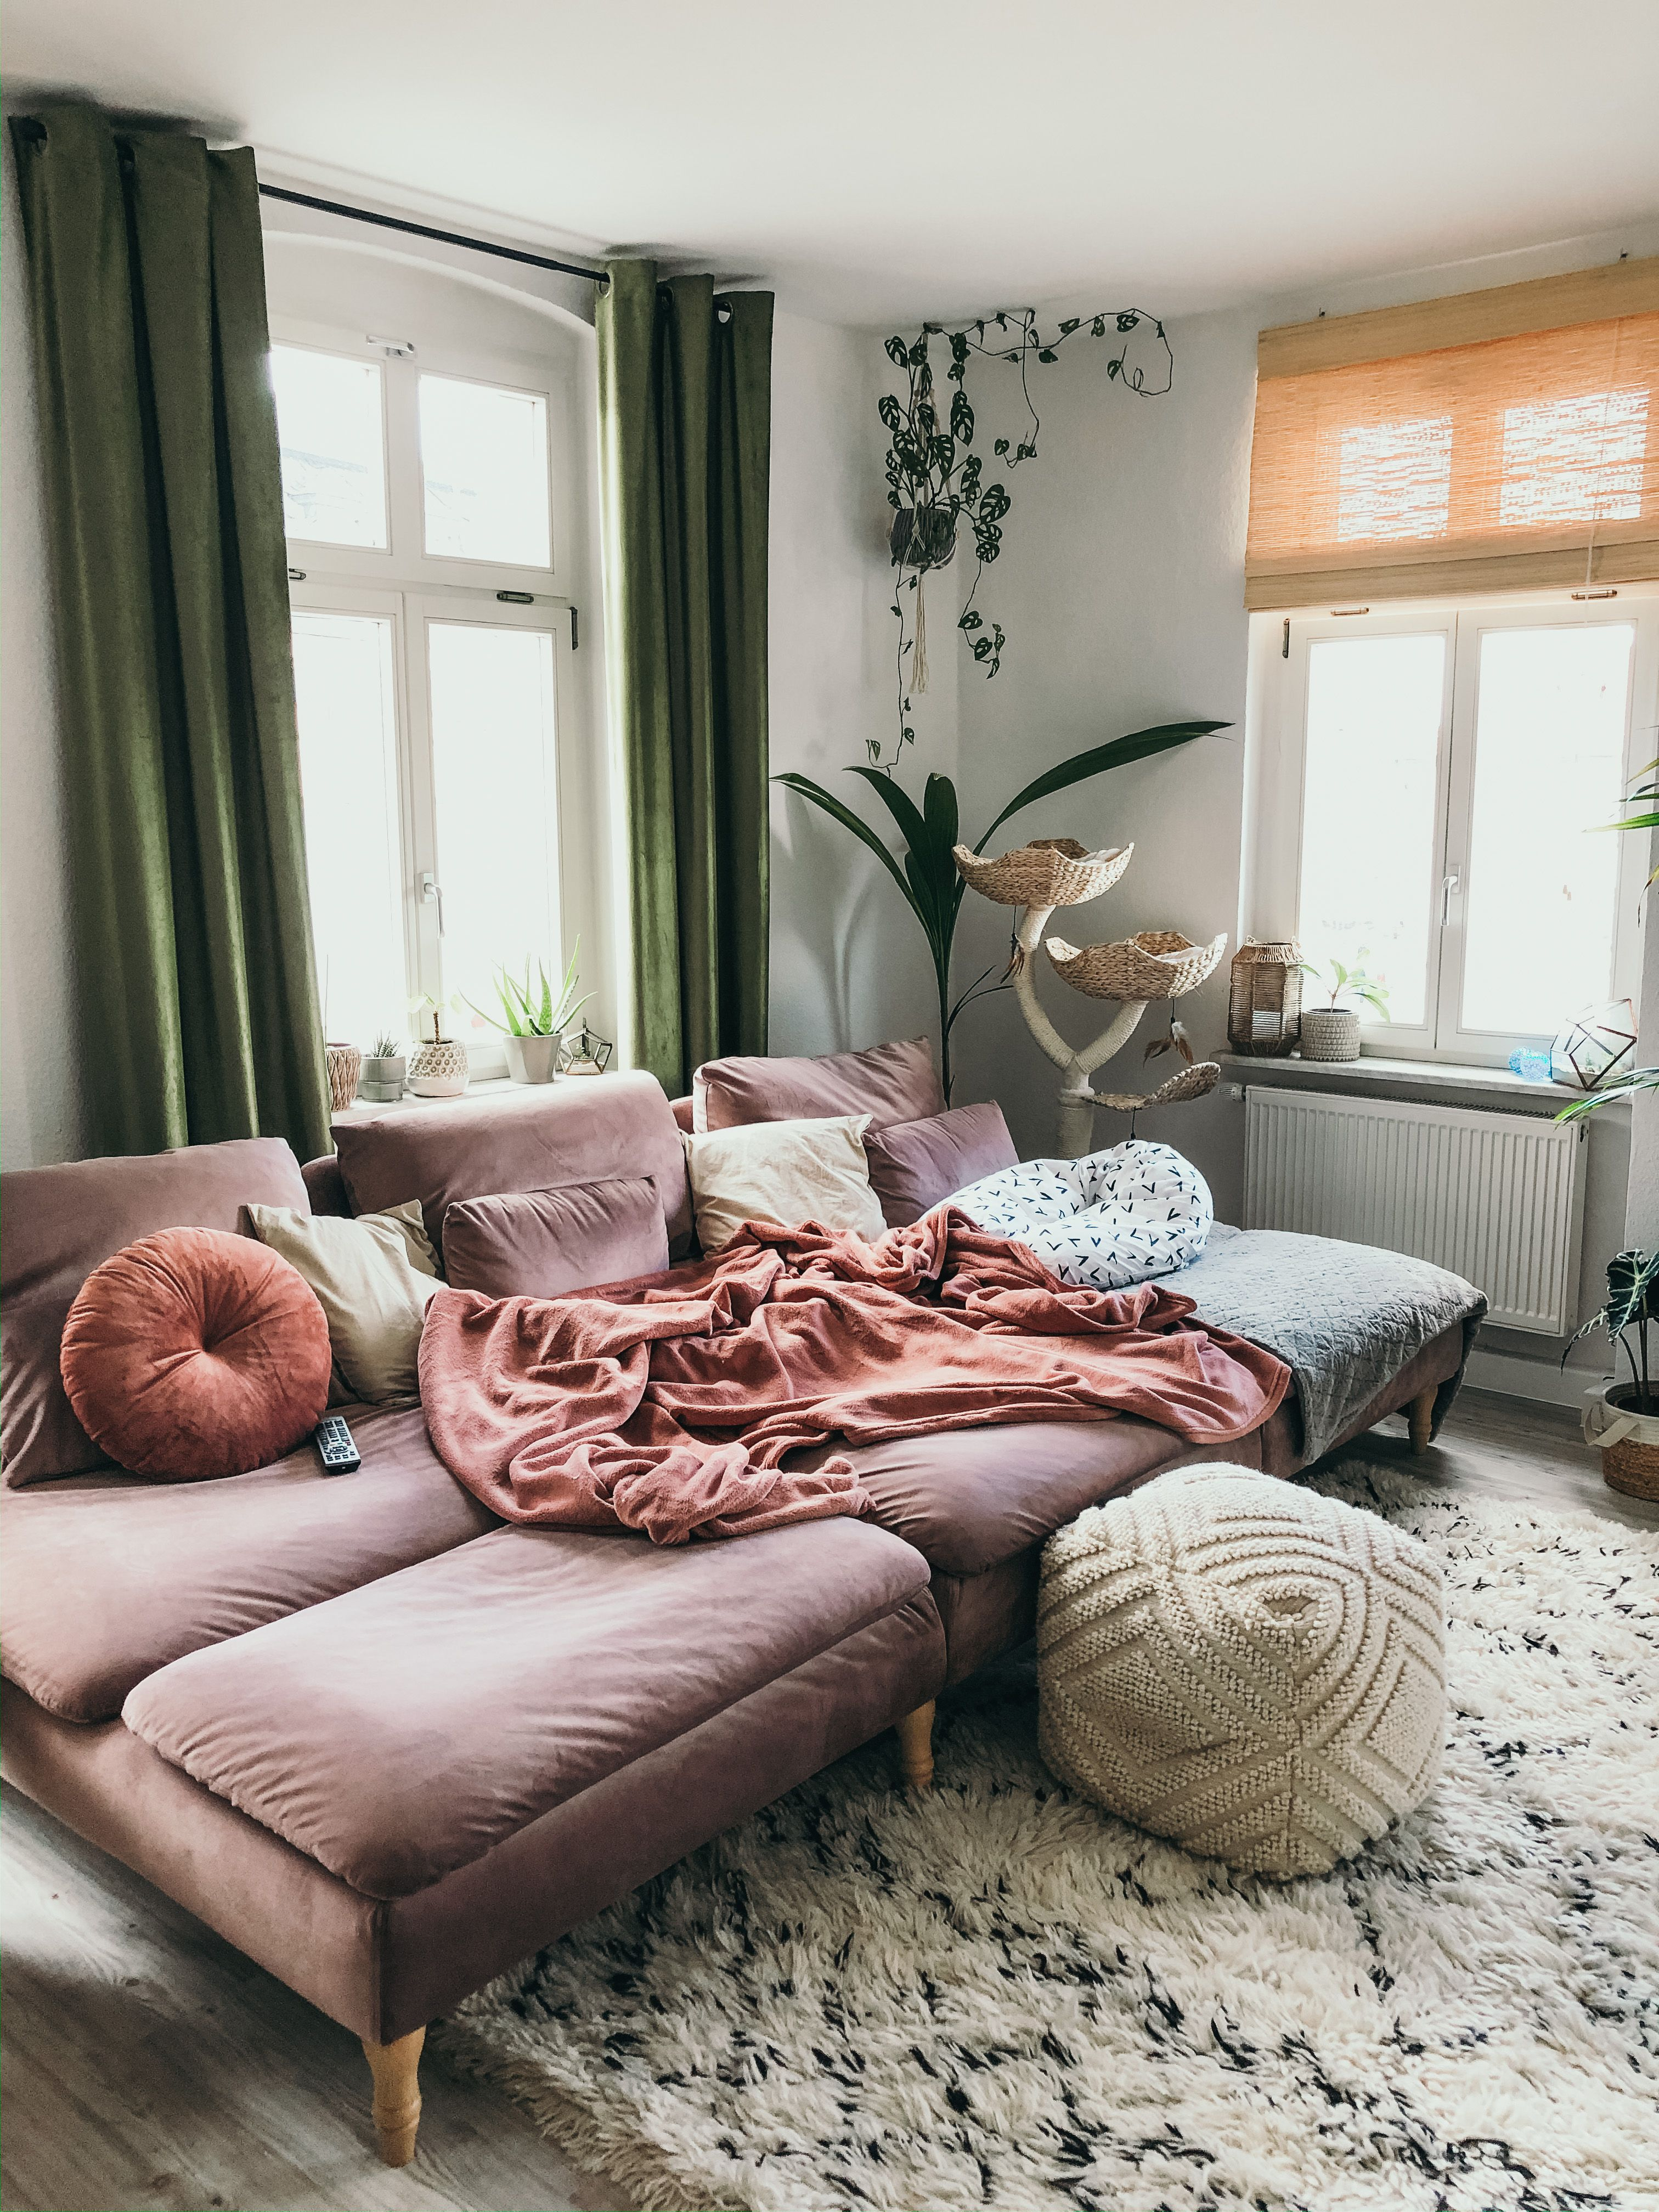 How Epic Cozy Is This Living Room Living Room Decor Modern Havenly Living Room Home Curtains